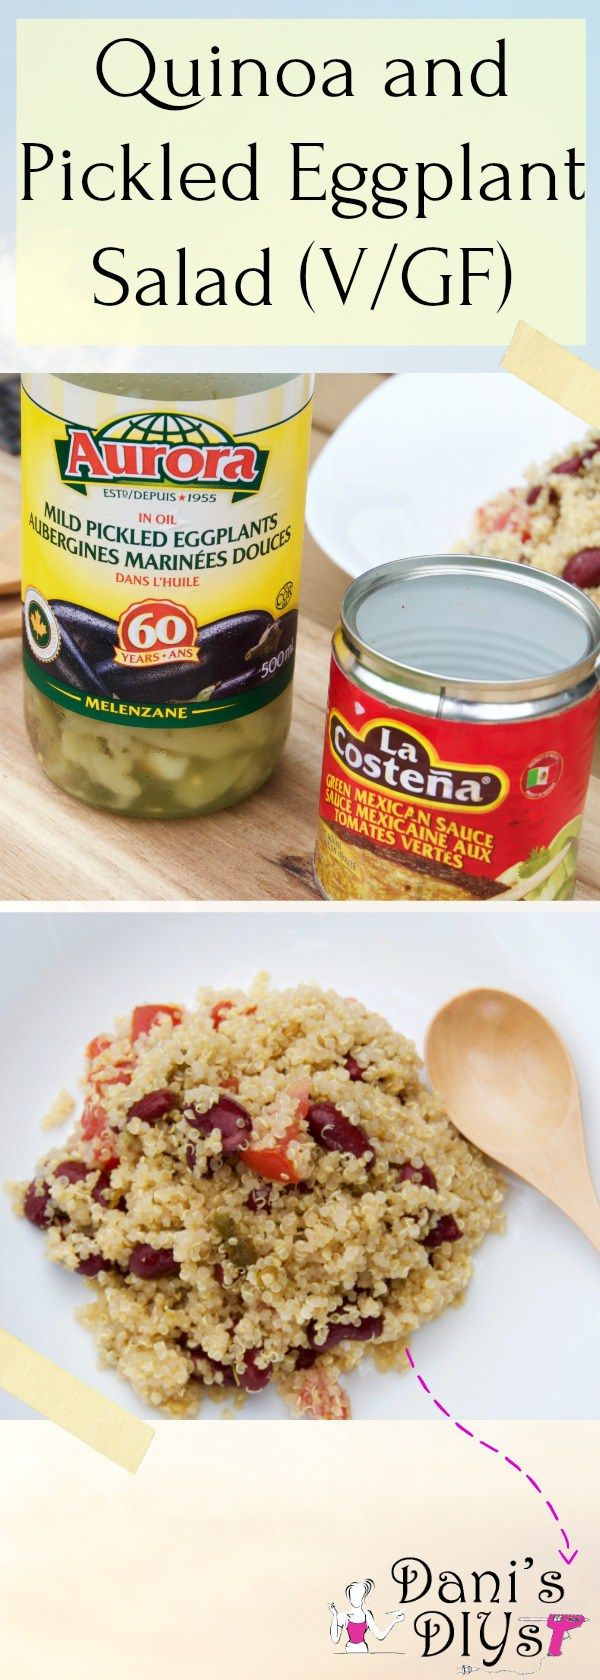 This quinoa, pickled eggplant and green Mexican sauce salad is so easy and absolutely delicious! Takes just minutes to put together and even less time to gobble up! Give me quinoa and some veggies and I am the happiest person ever! <3